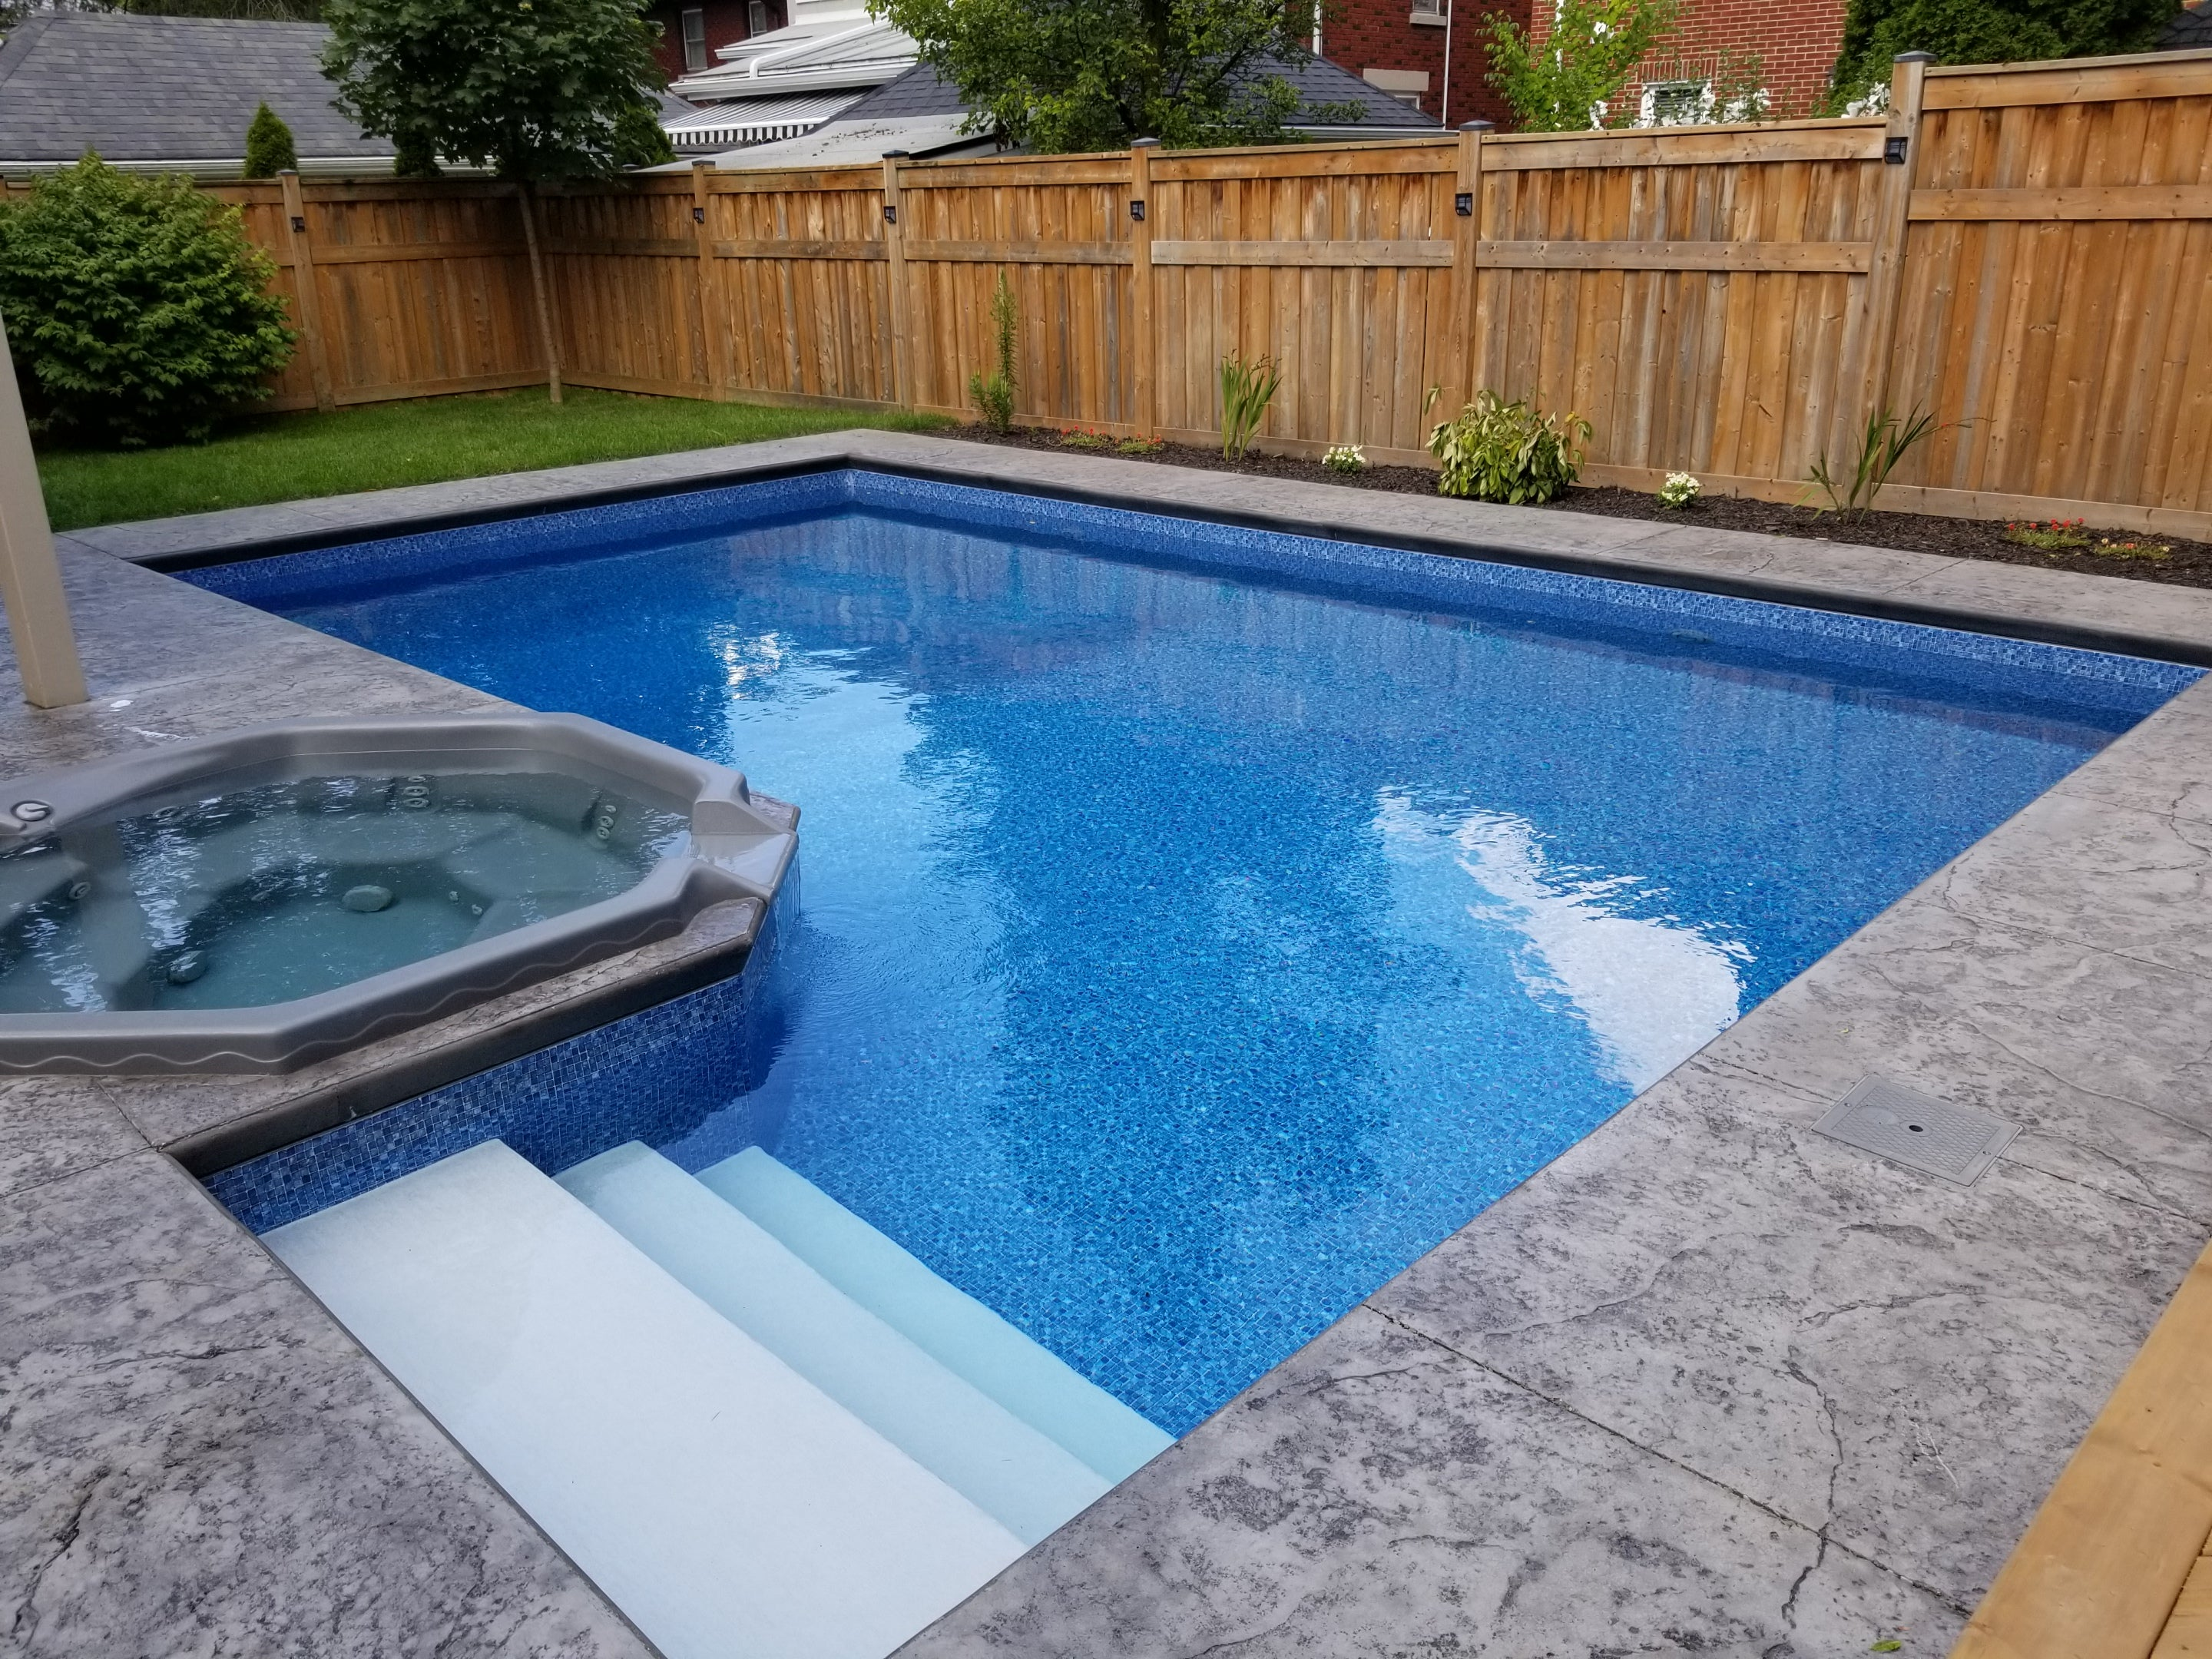 Pool & Hot Tub London